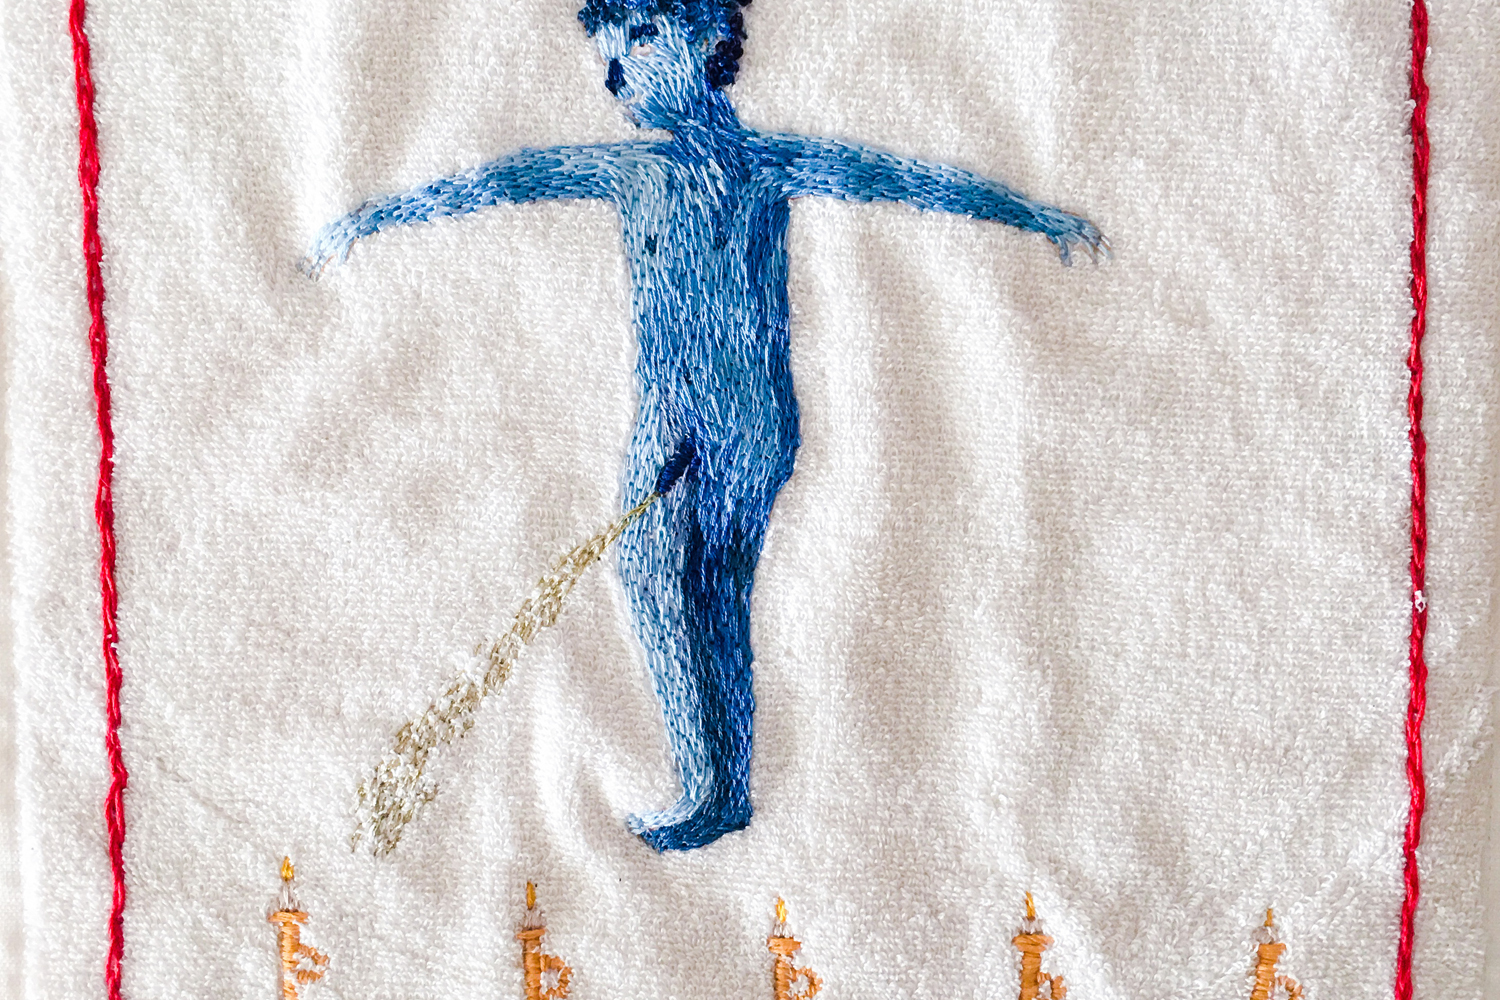 Aaron Billings,  Pissing , 2017, detail, cotton towel and hand-embroidered thread. Courtesy the artist.